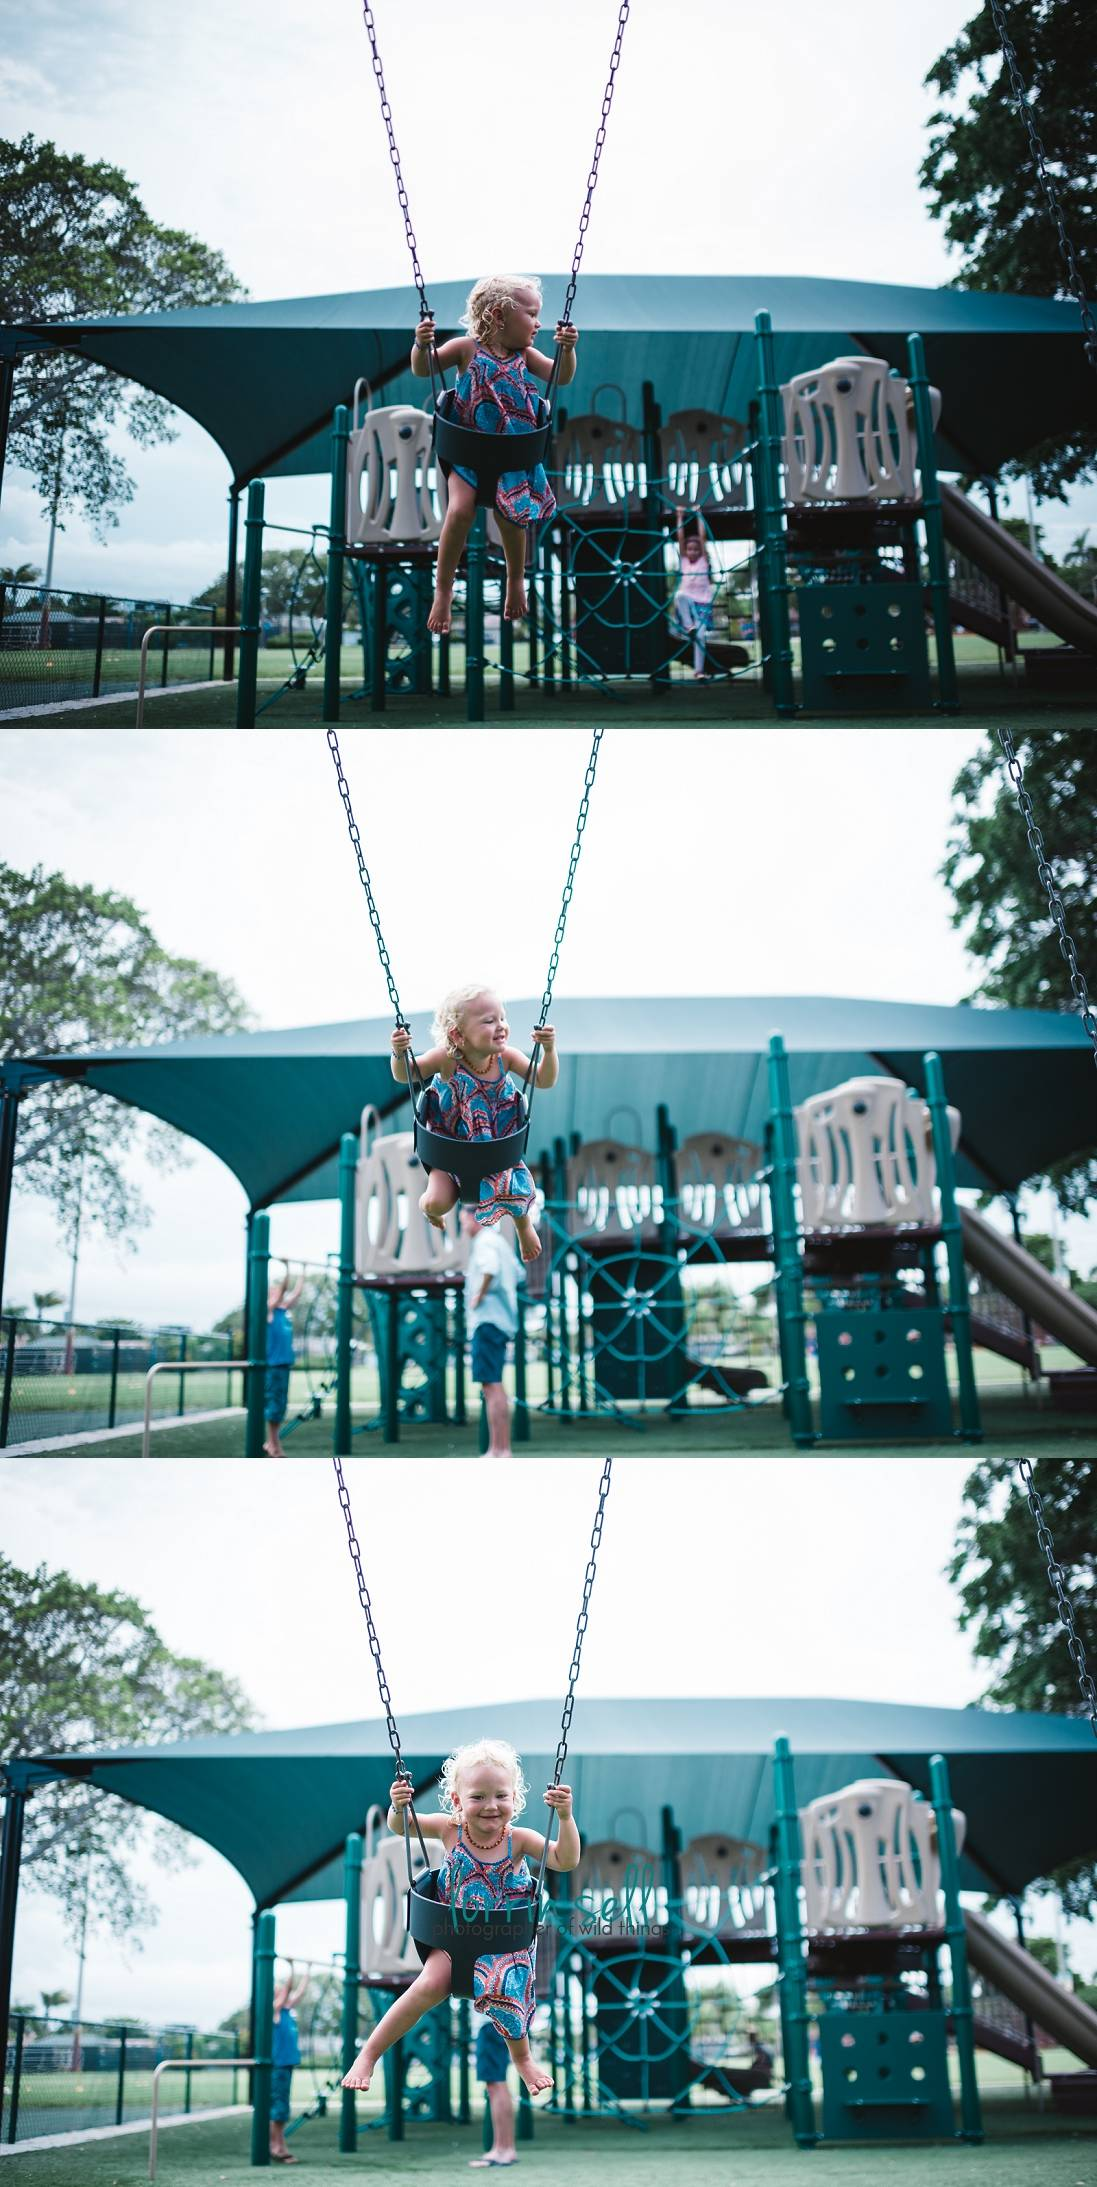 check out these pointers for better pictures at the playground!